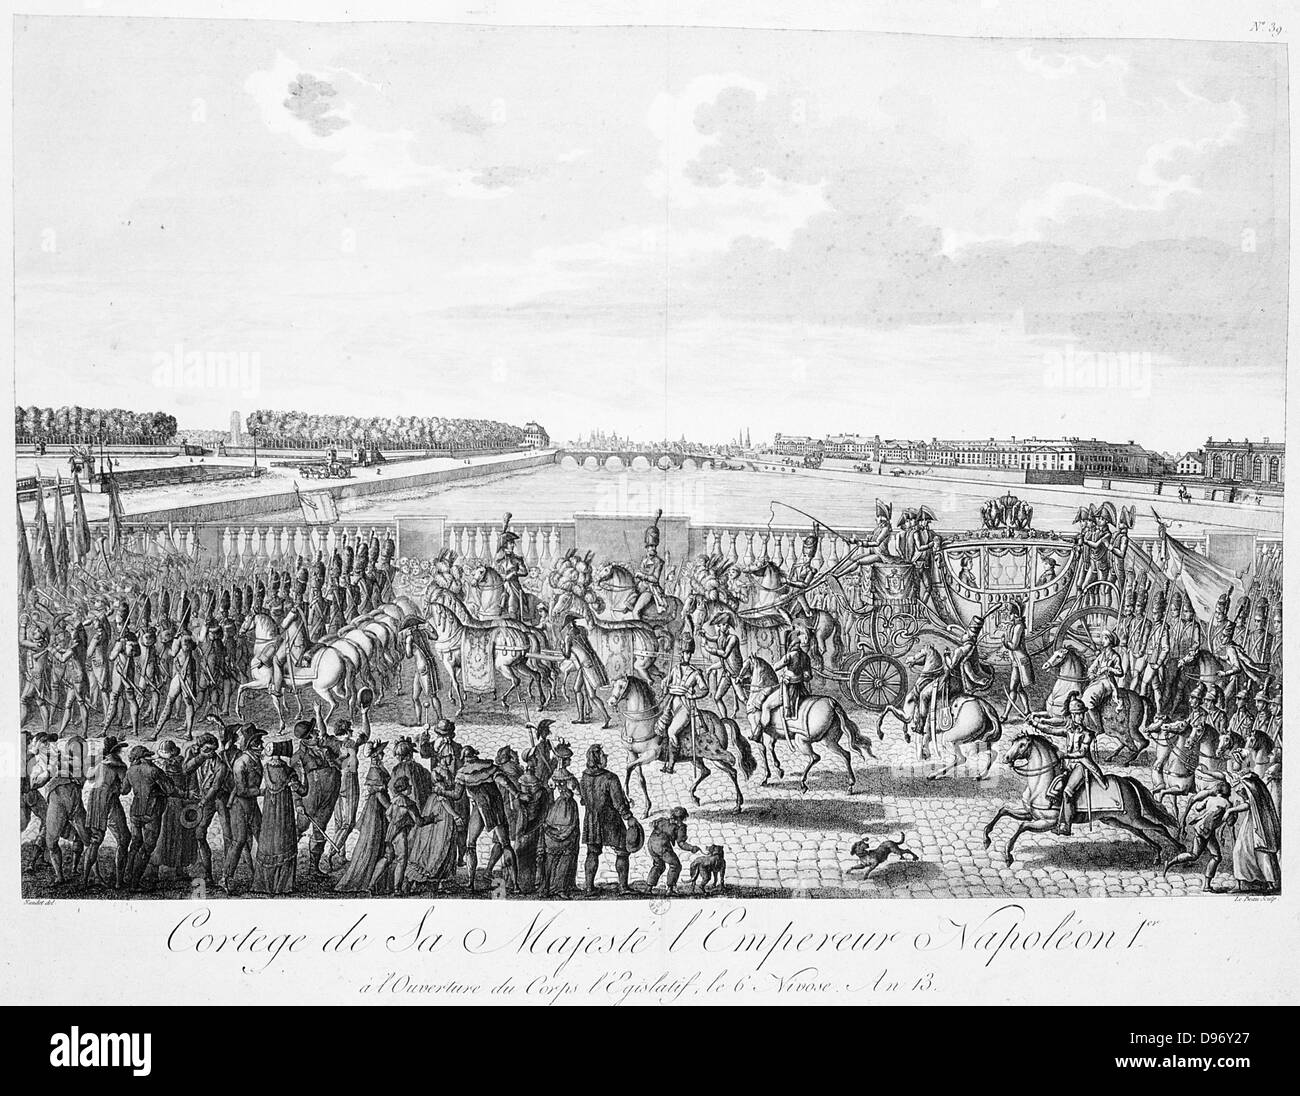 Carriage with horses carrying Napoleon I of France Circa 1807 - Stock Image